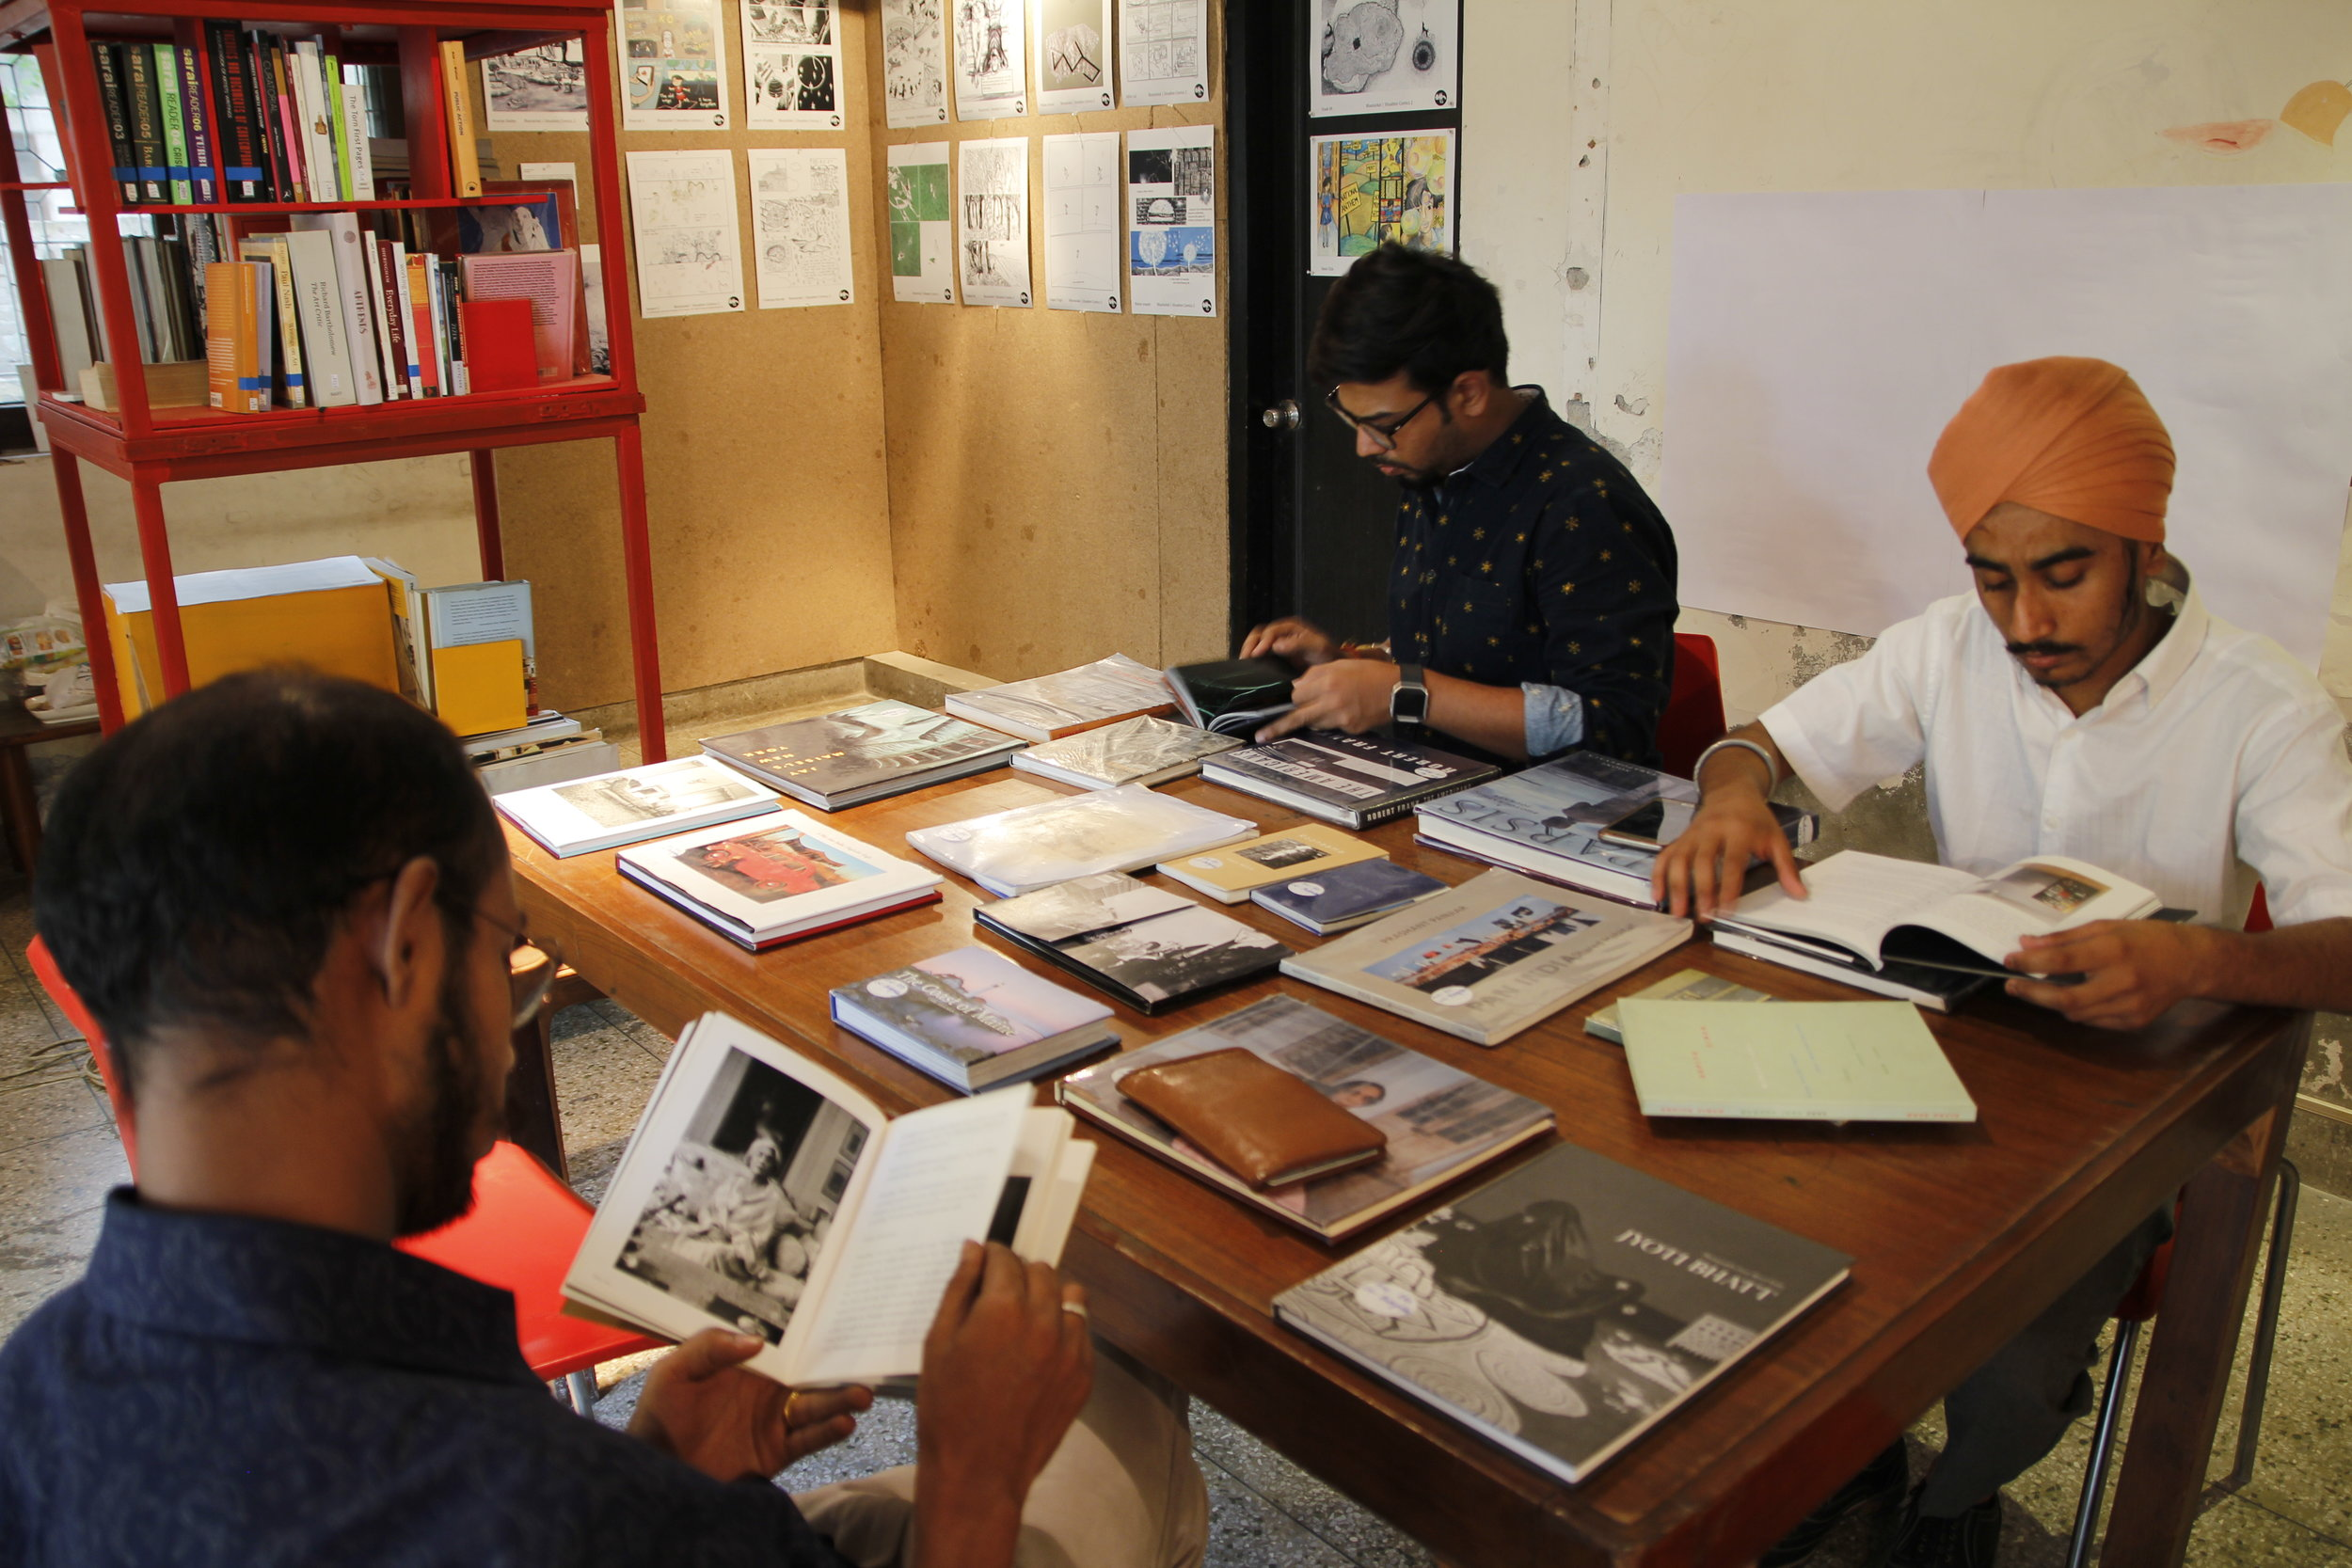 For the Love of Books: Discussion on artist books with Chandan Gomes, Dileep Prakash and Gagan Singh | C-13